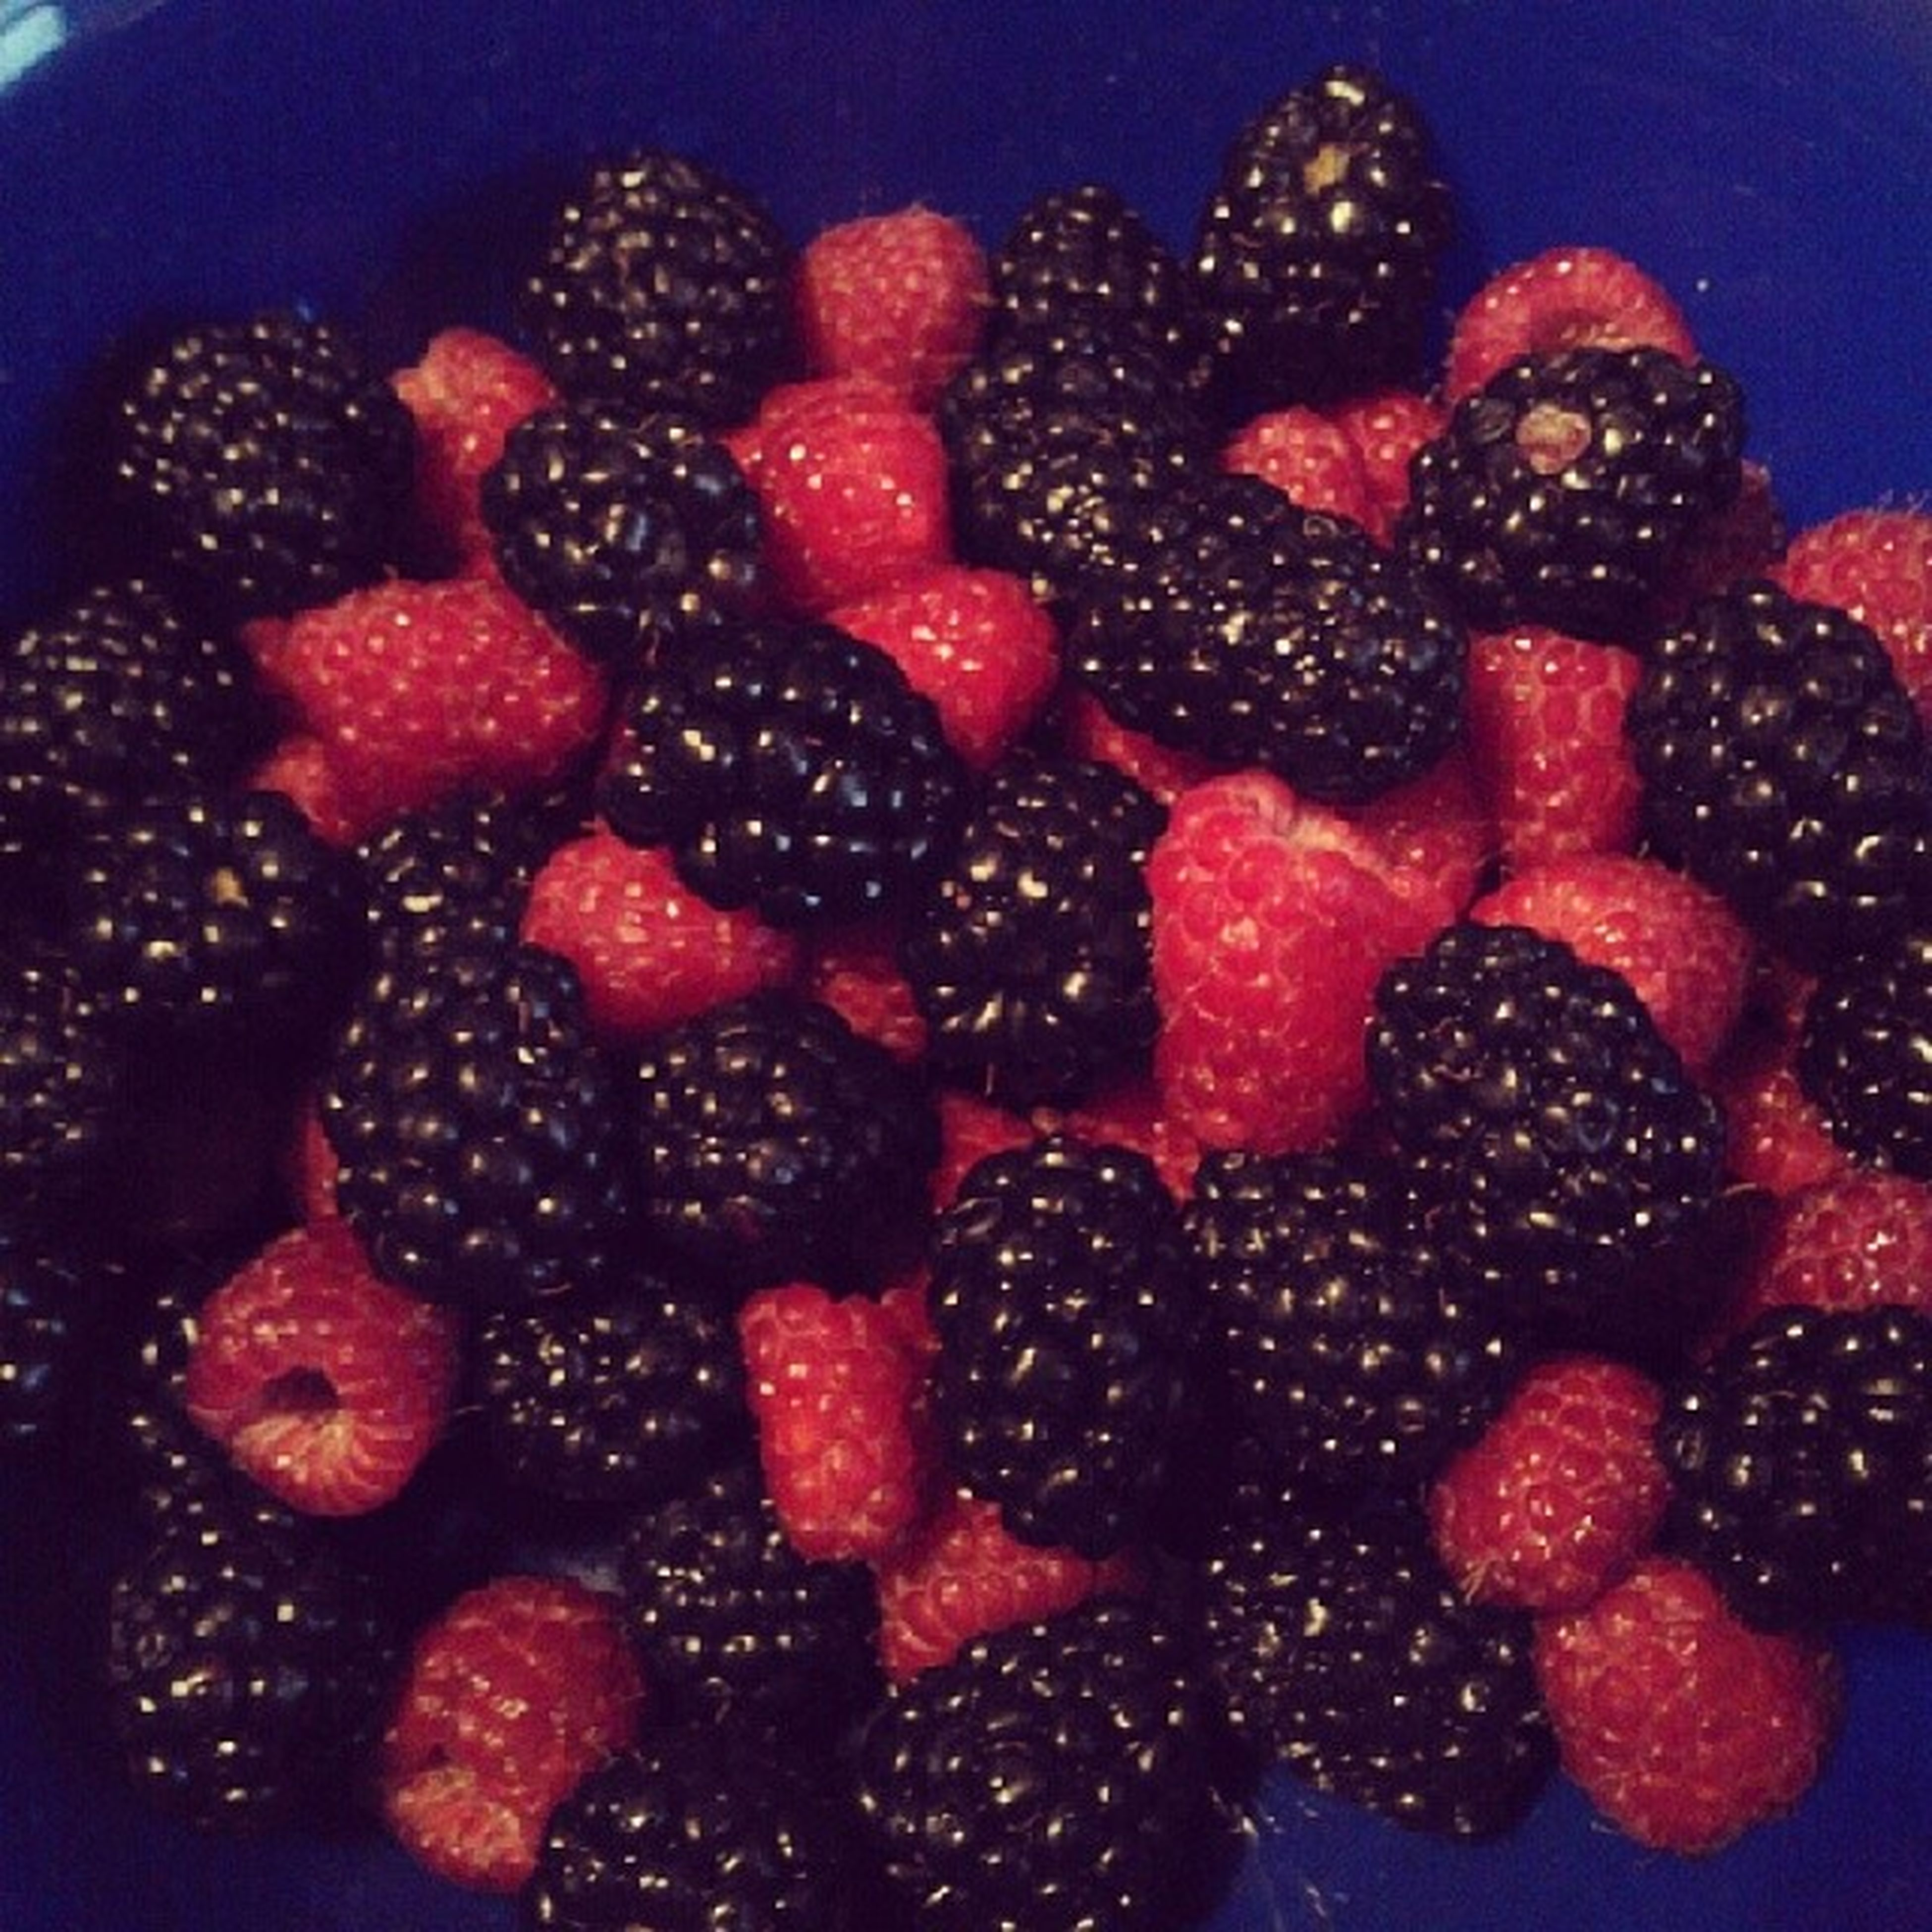 Thought about you today Pap. Miss youuuu. Freshberries